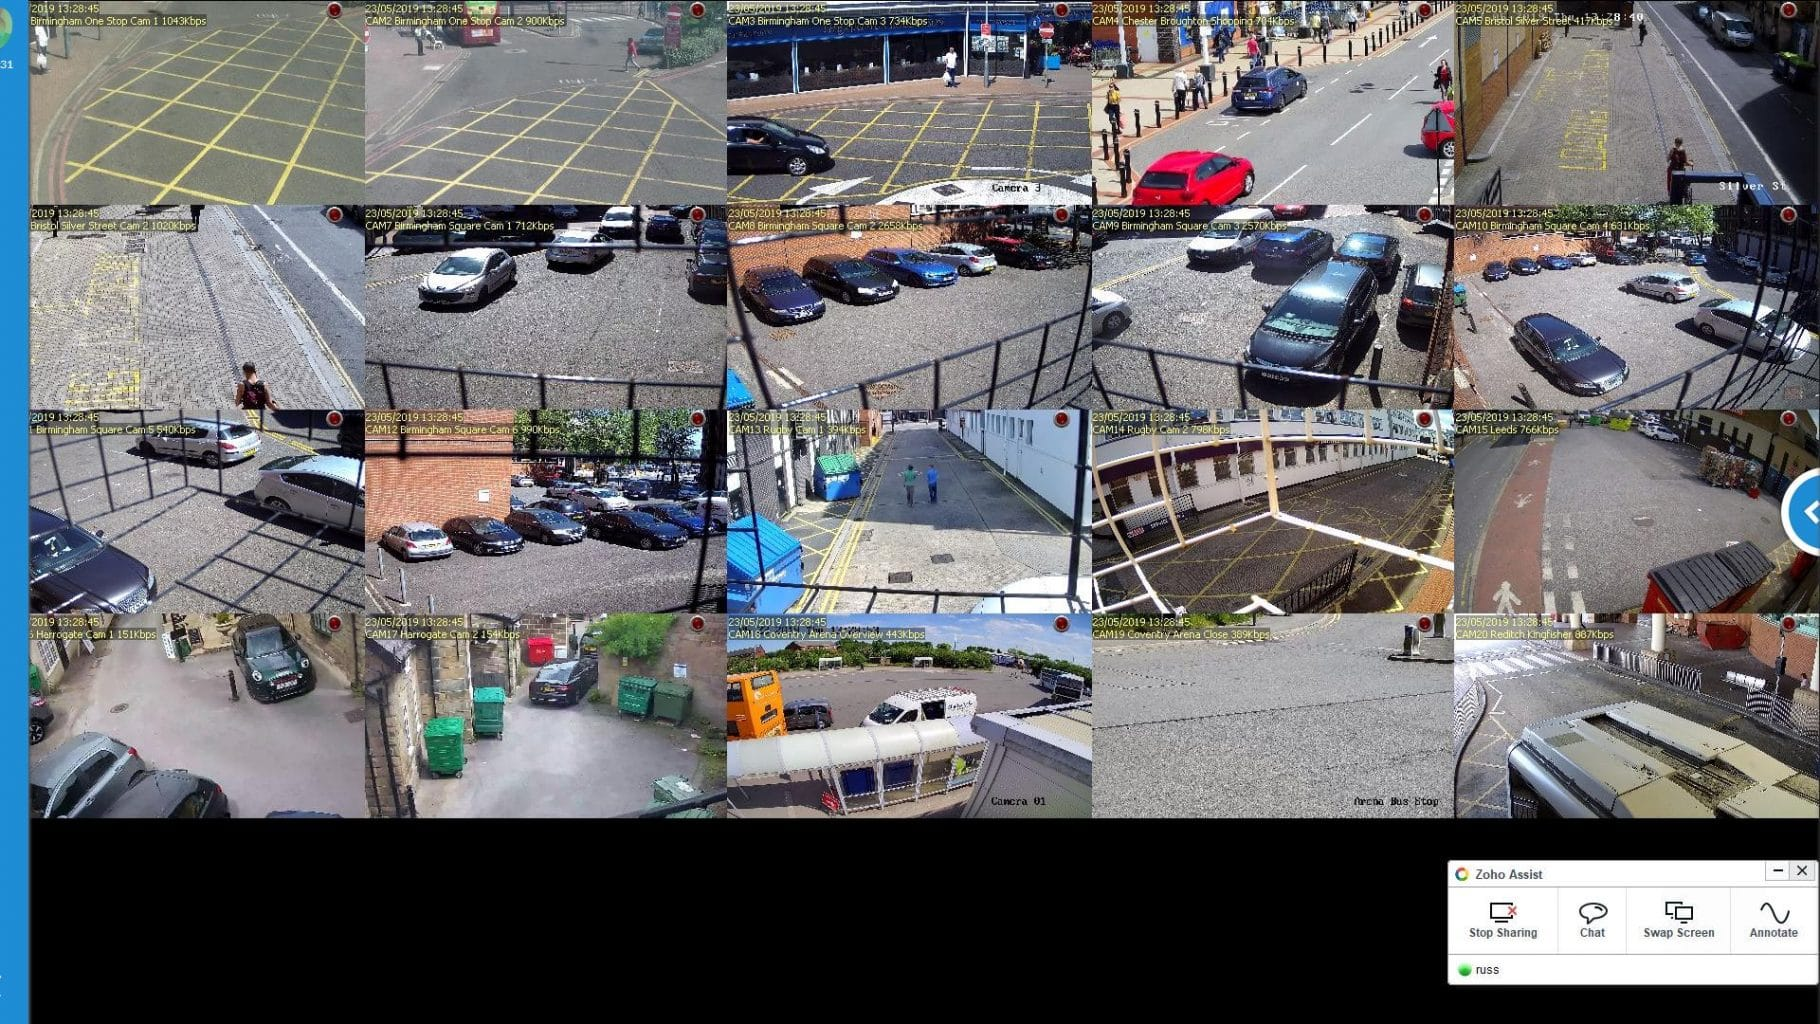 Multi Site Remote CCTV for parking